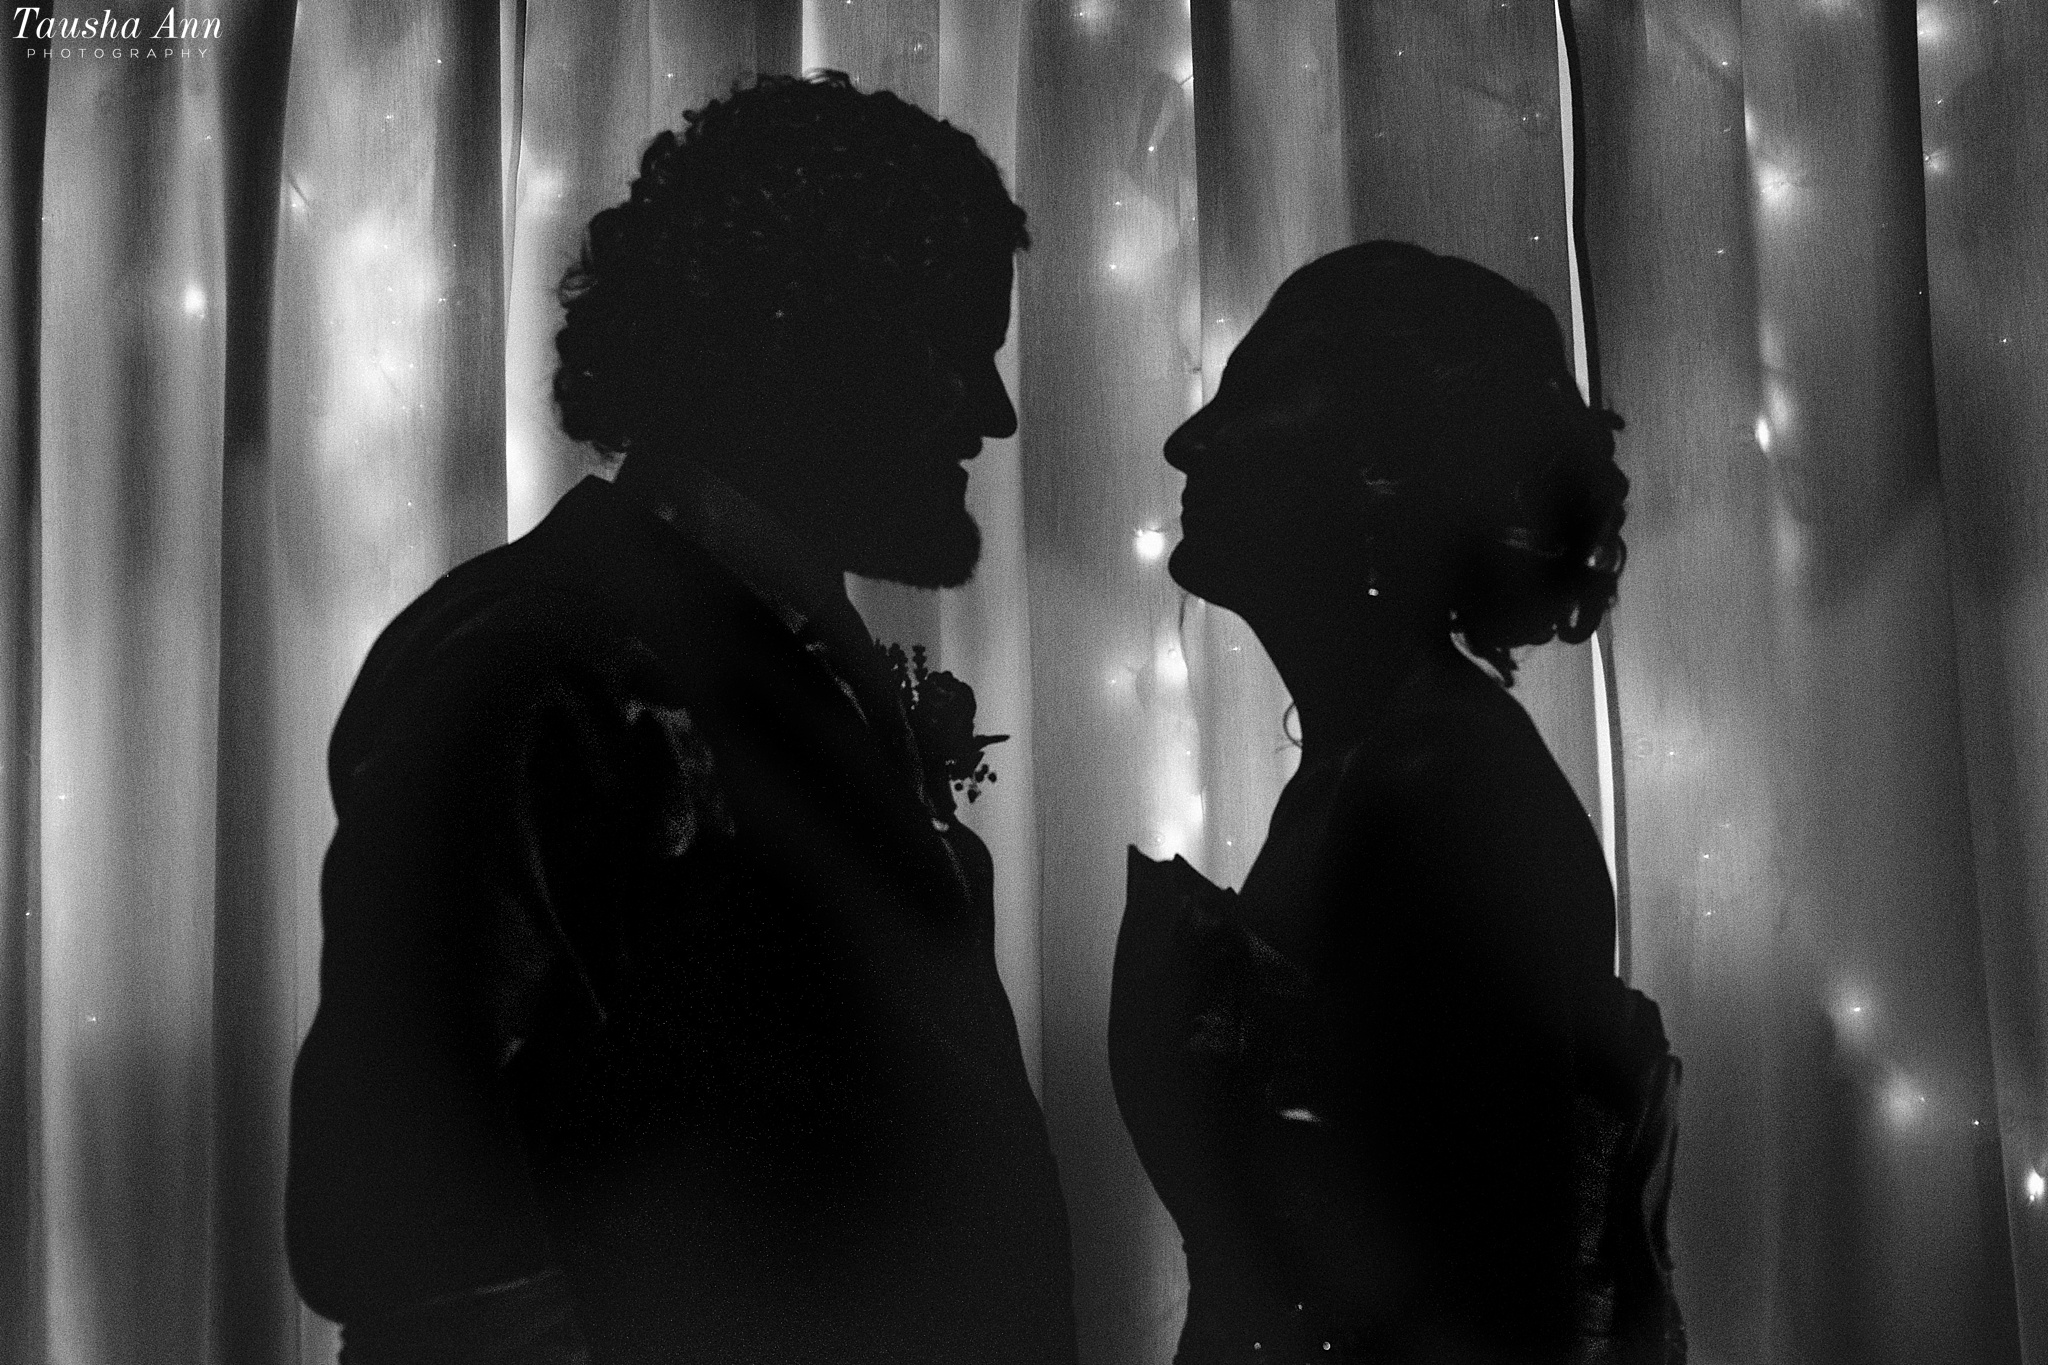 Silhouette image at The Shiloh. Black and White with lights in background.